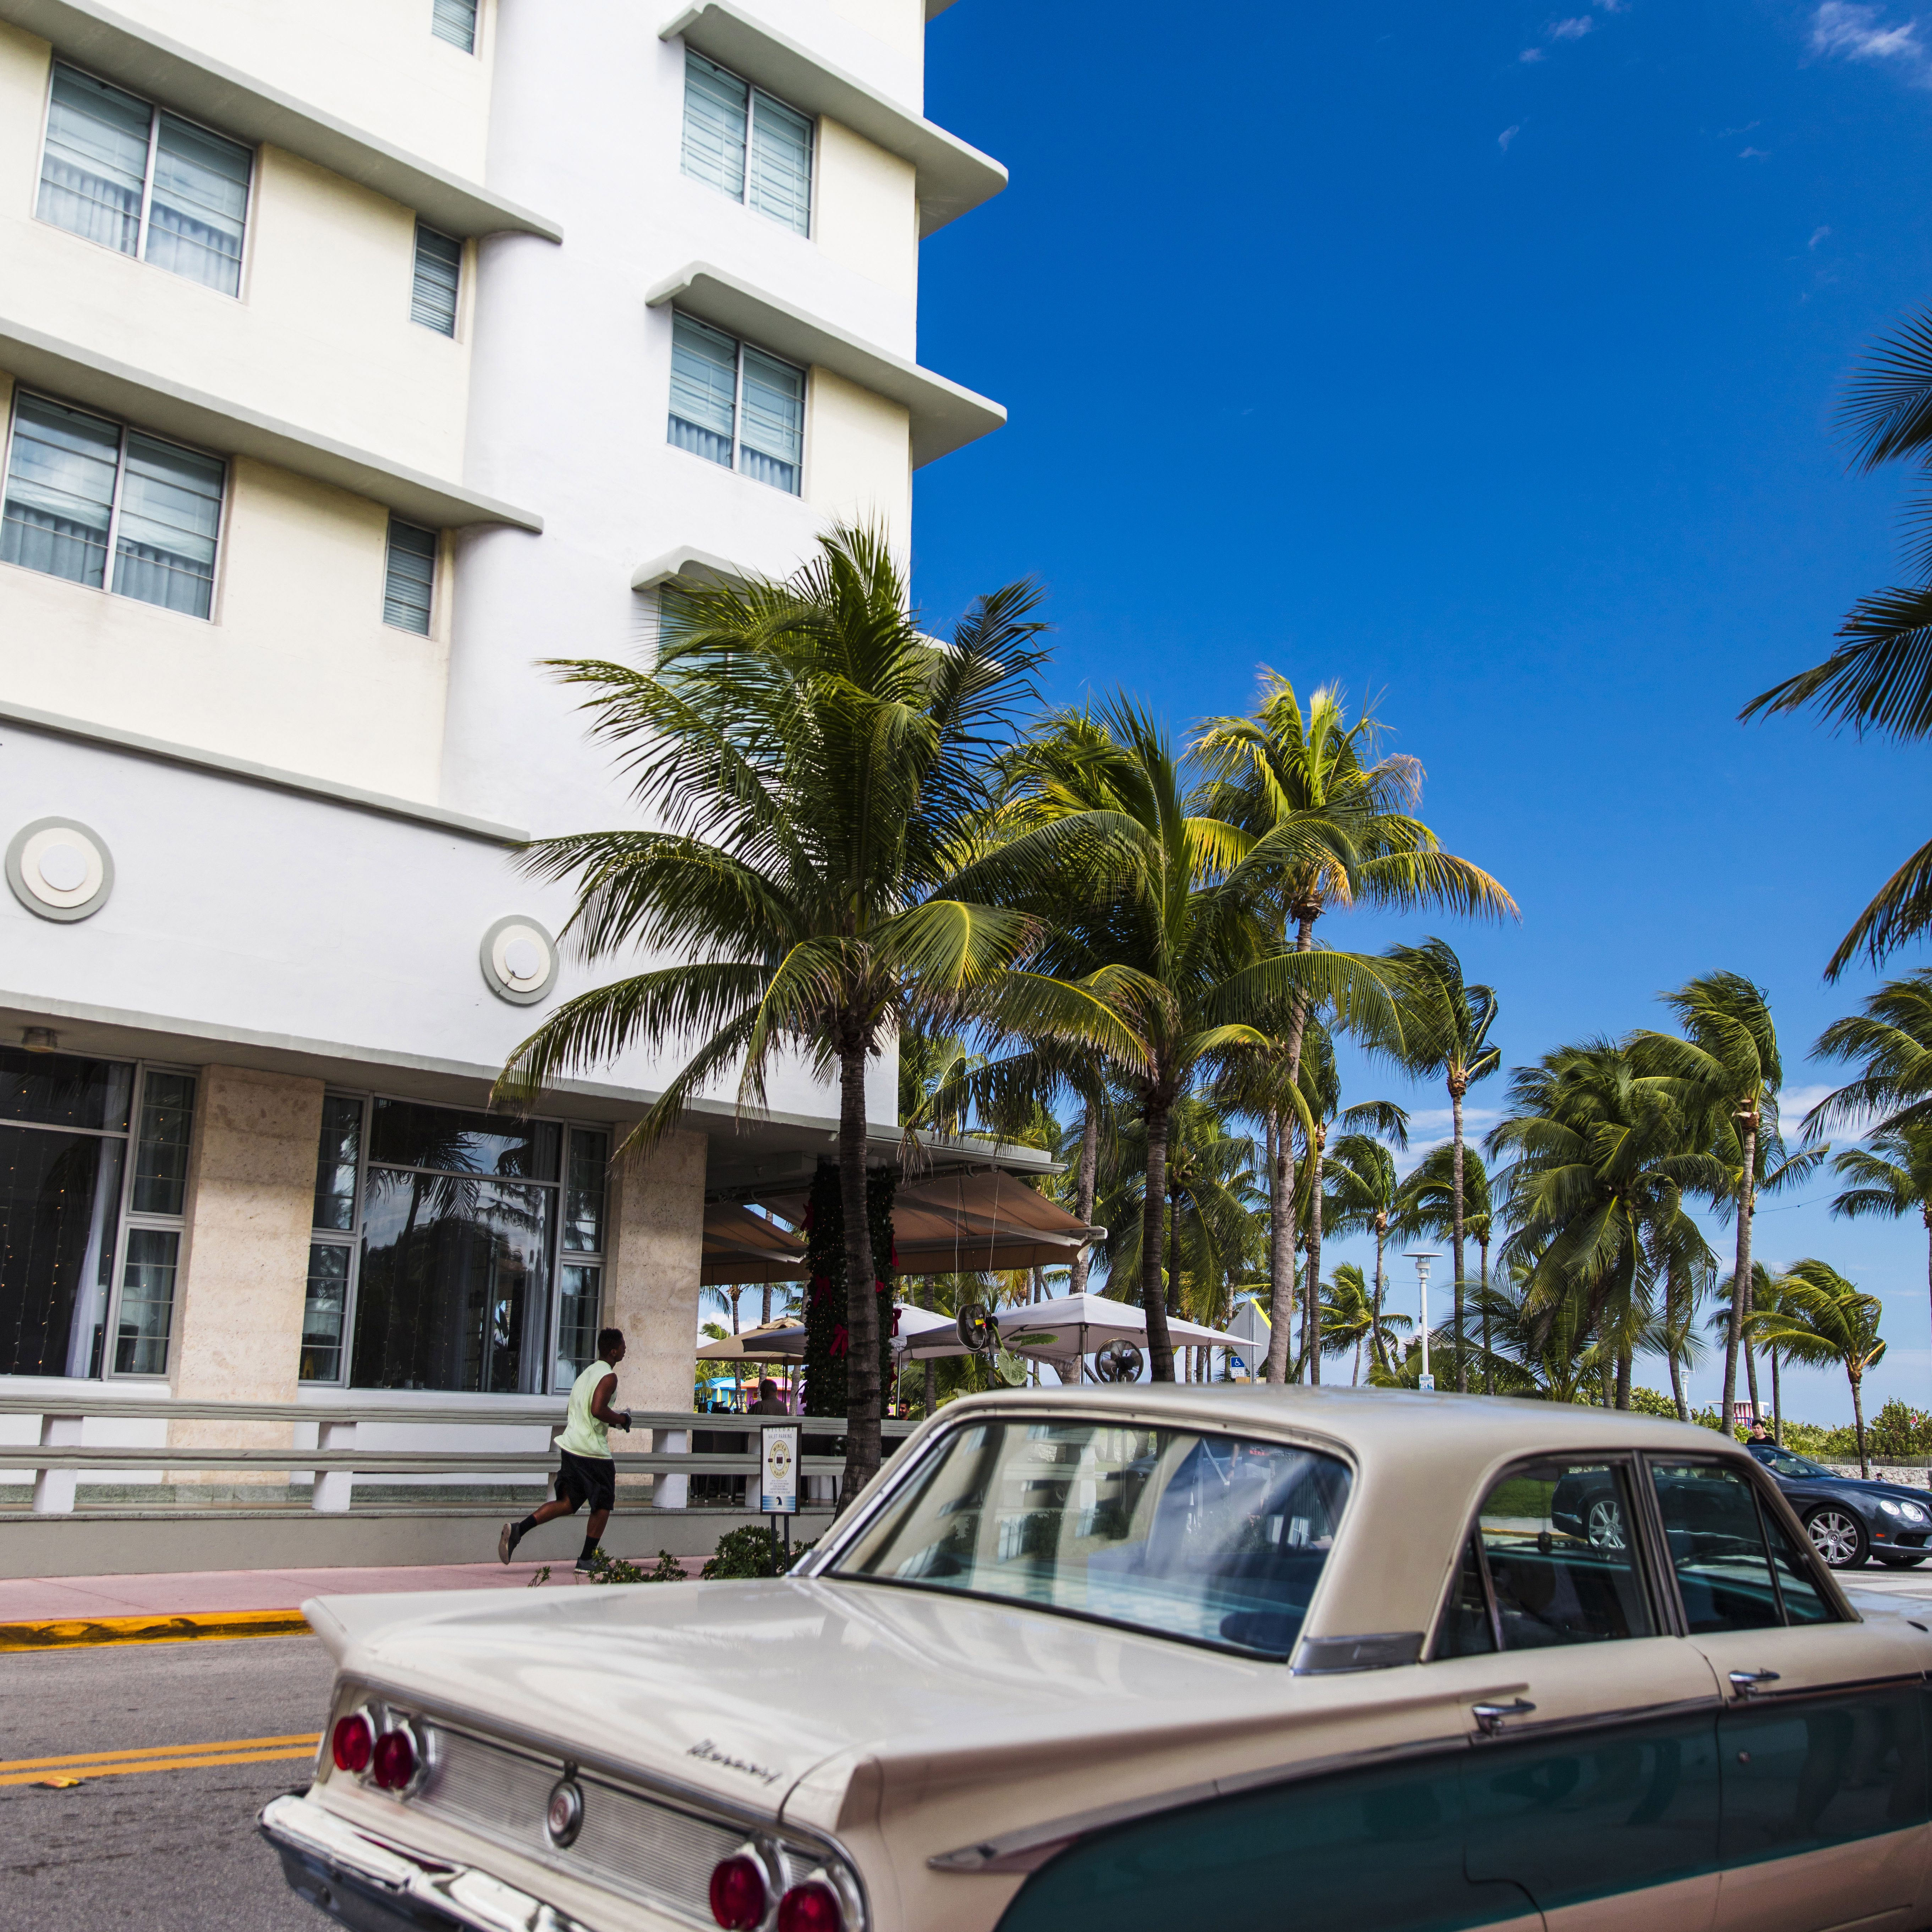 Classic car by palm trees and an art deco hotel in South Beach miami